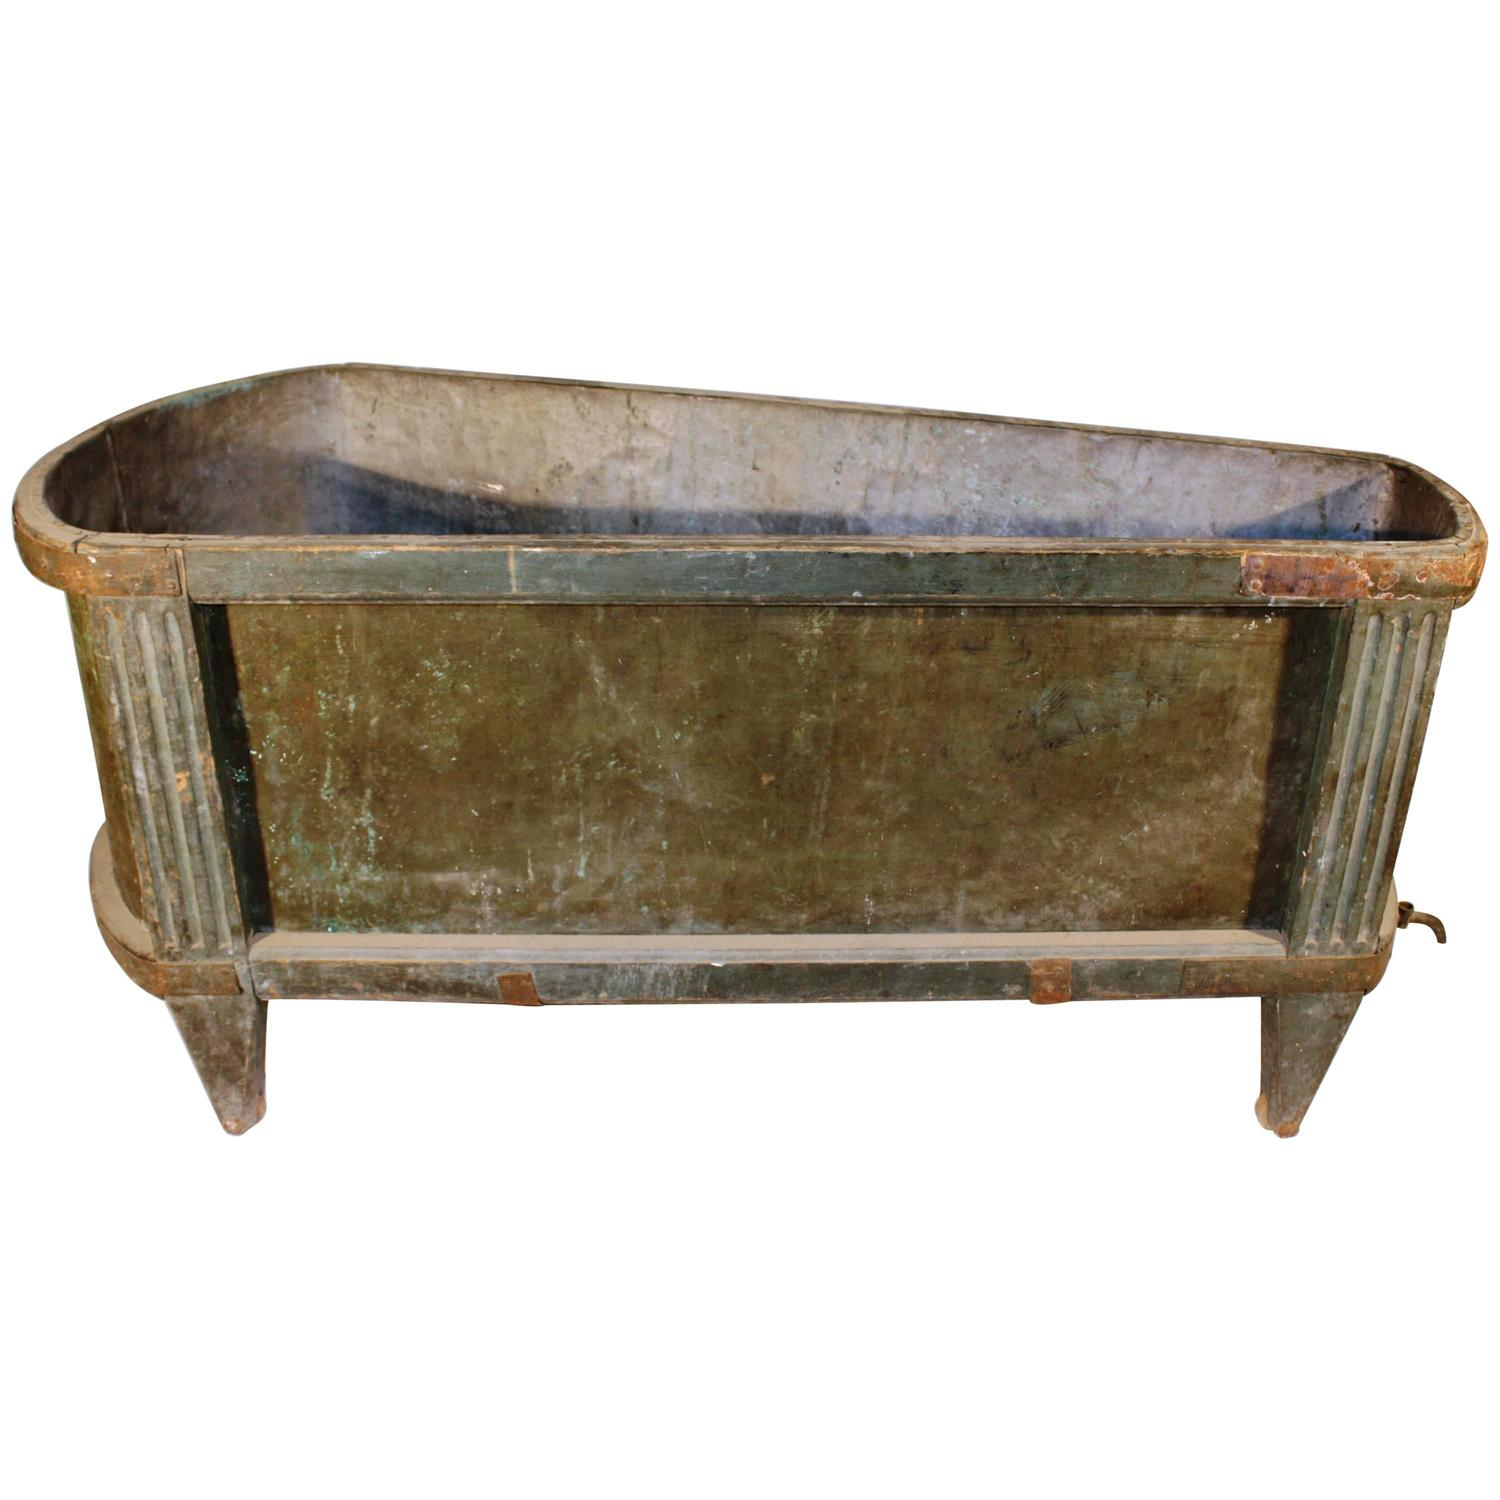 Antique Zinc Bathtub at 1stdibs